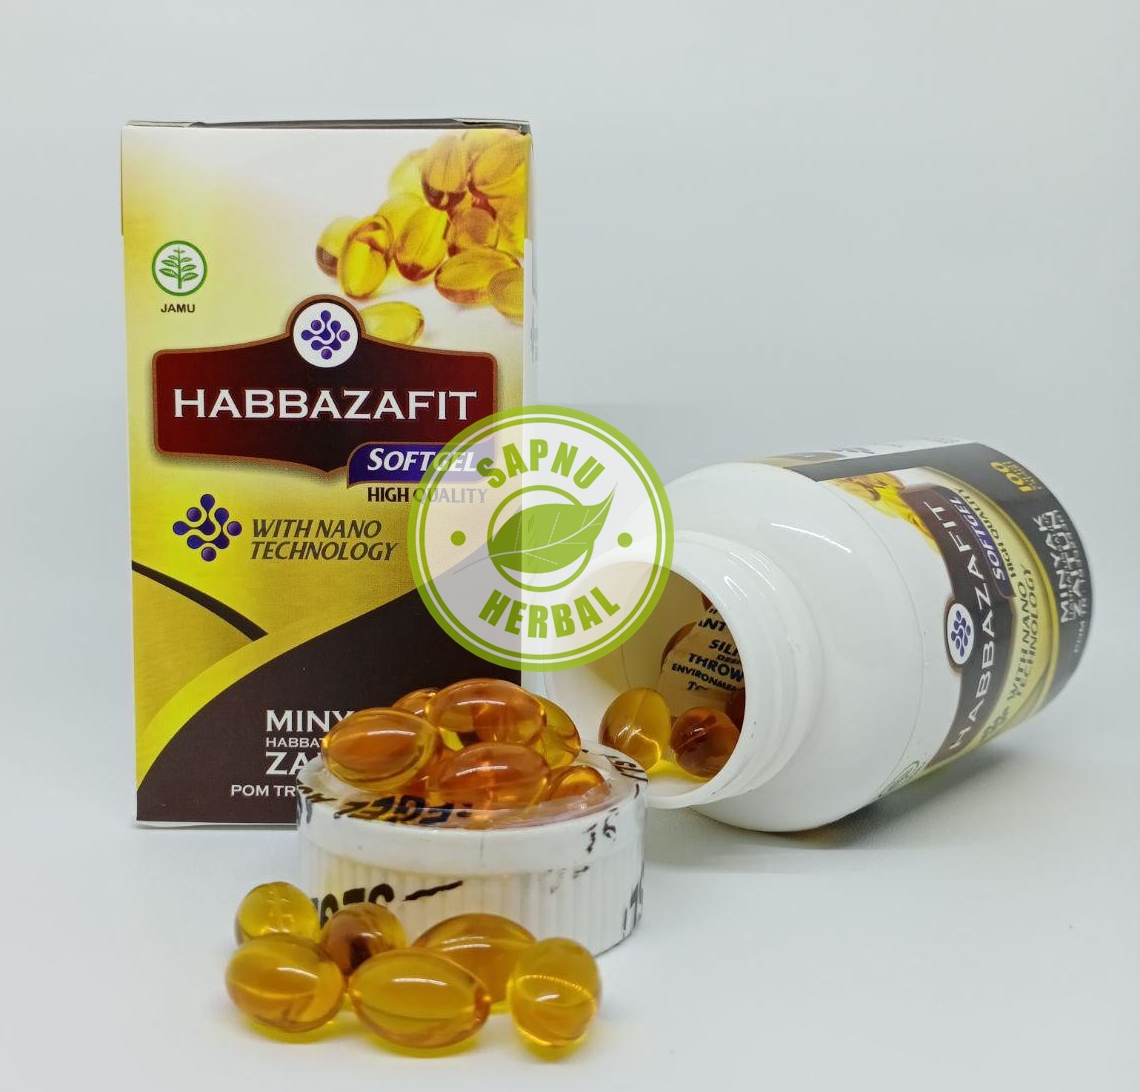 Habbazafit Softgel